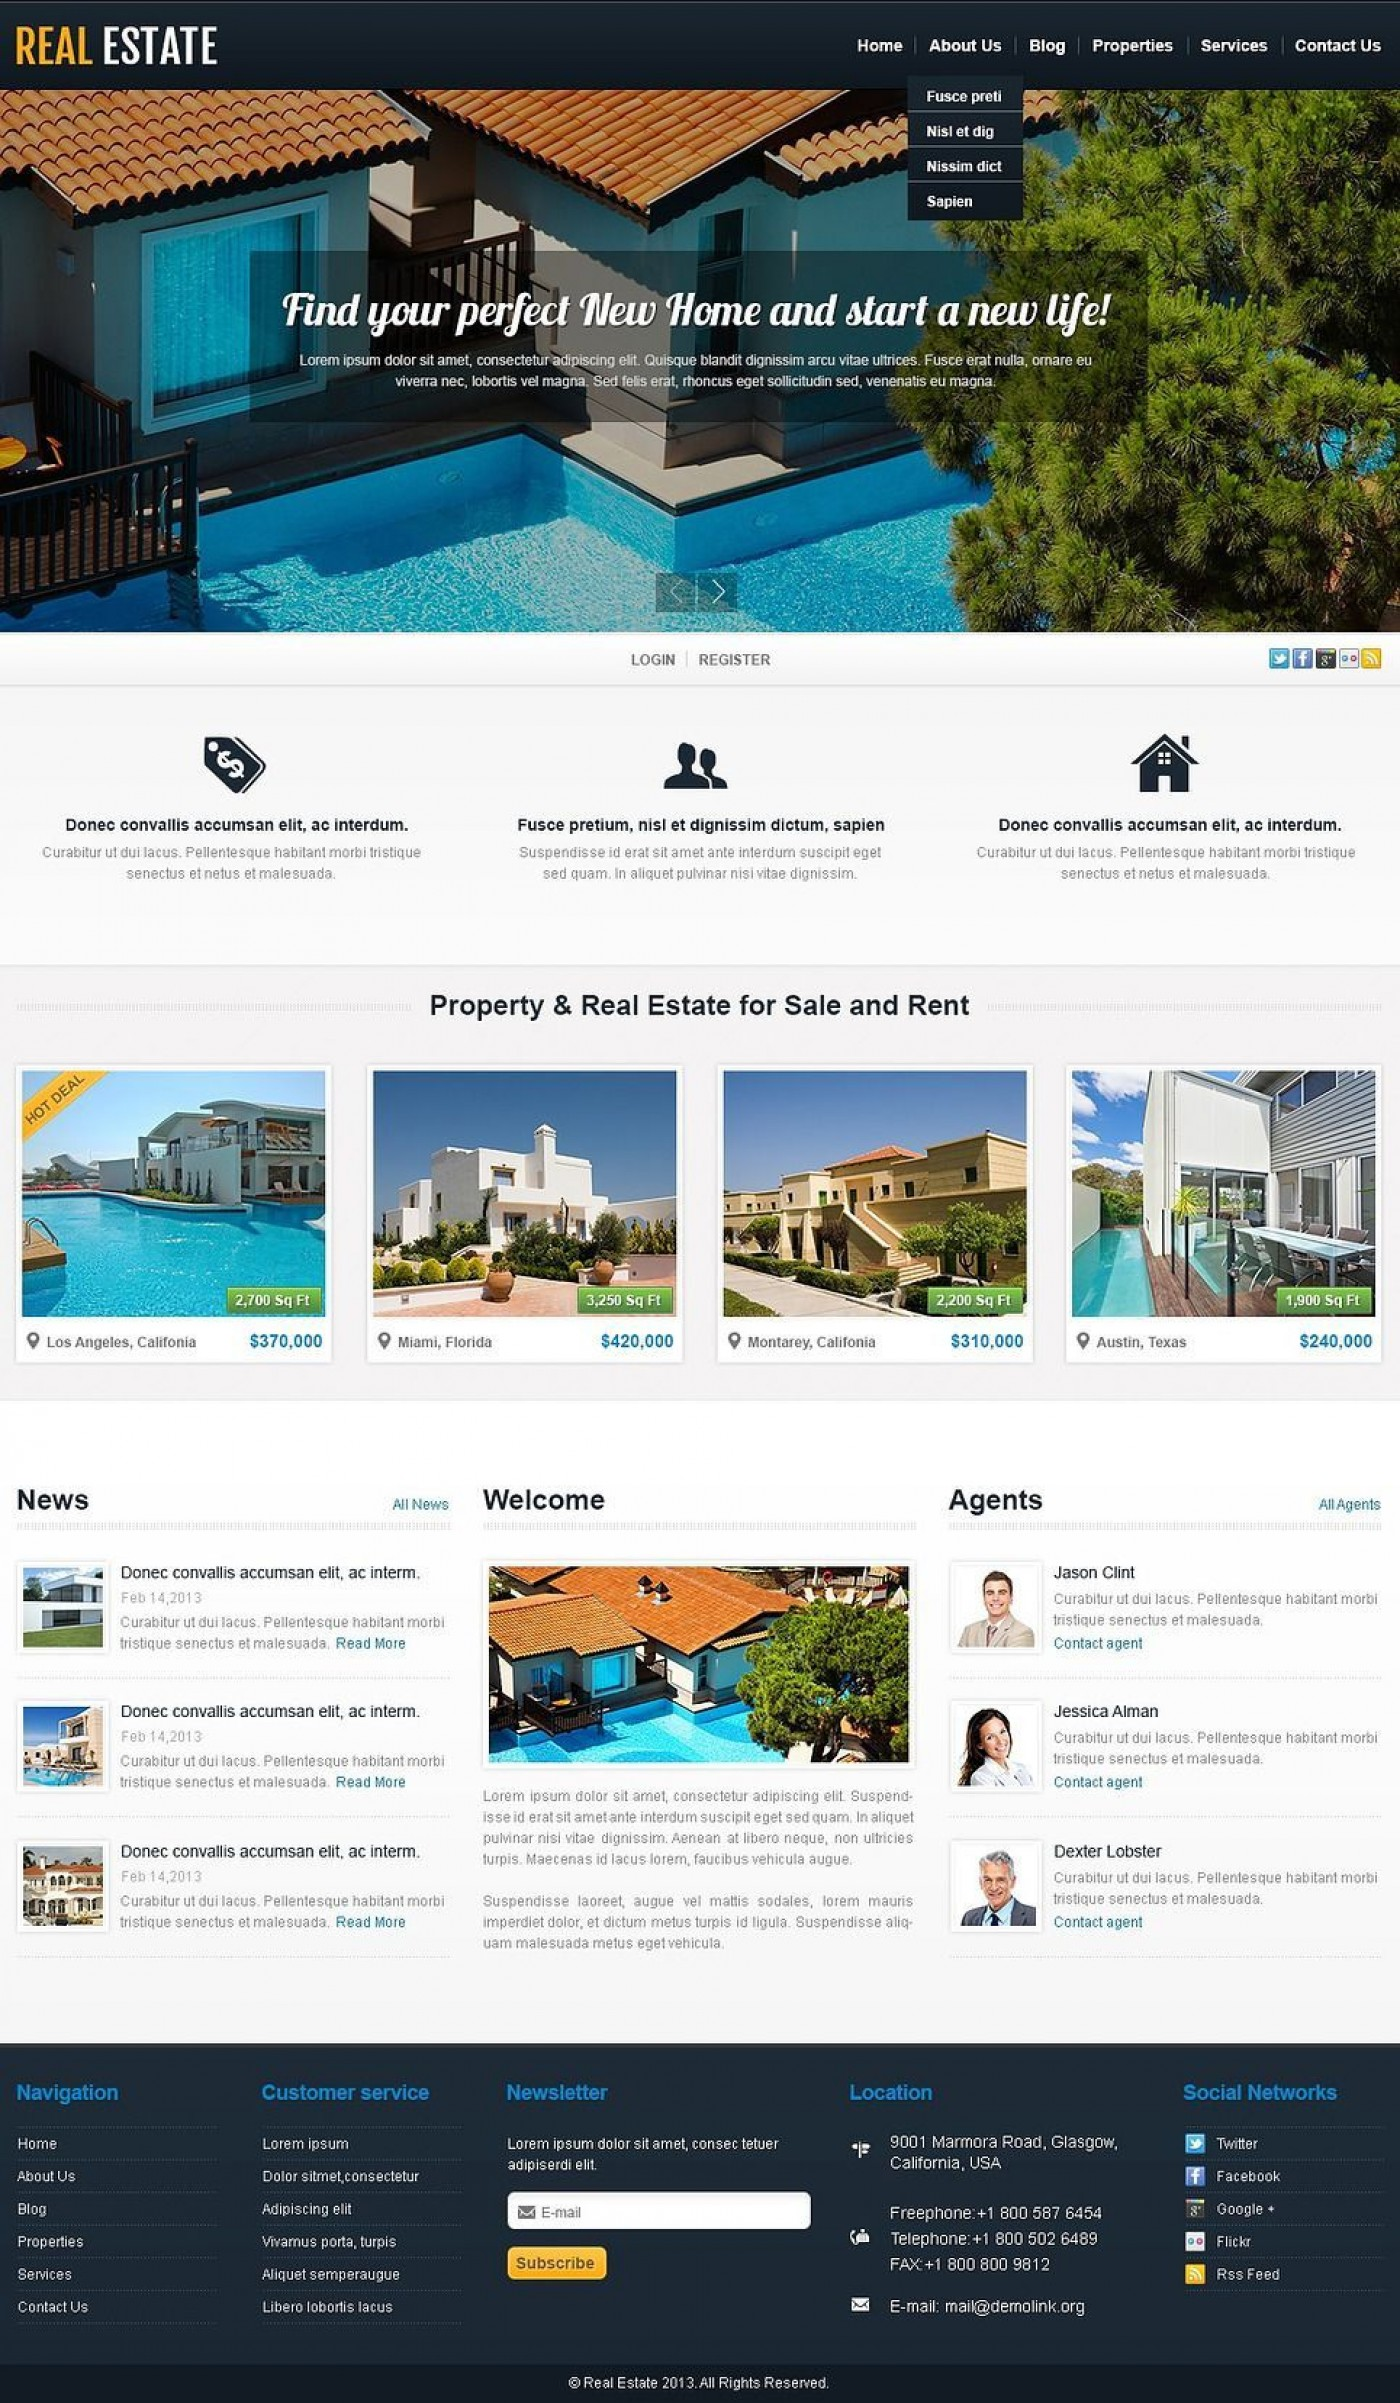 000 Exceptional Real Estate Template Wordpres High Resolution  Homepres - Theme Free Download Realtyspace1400